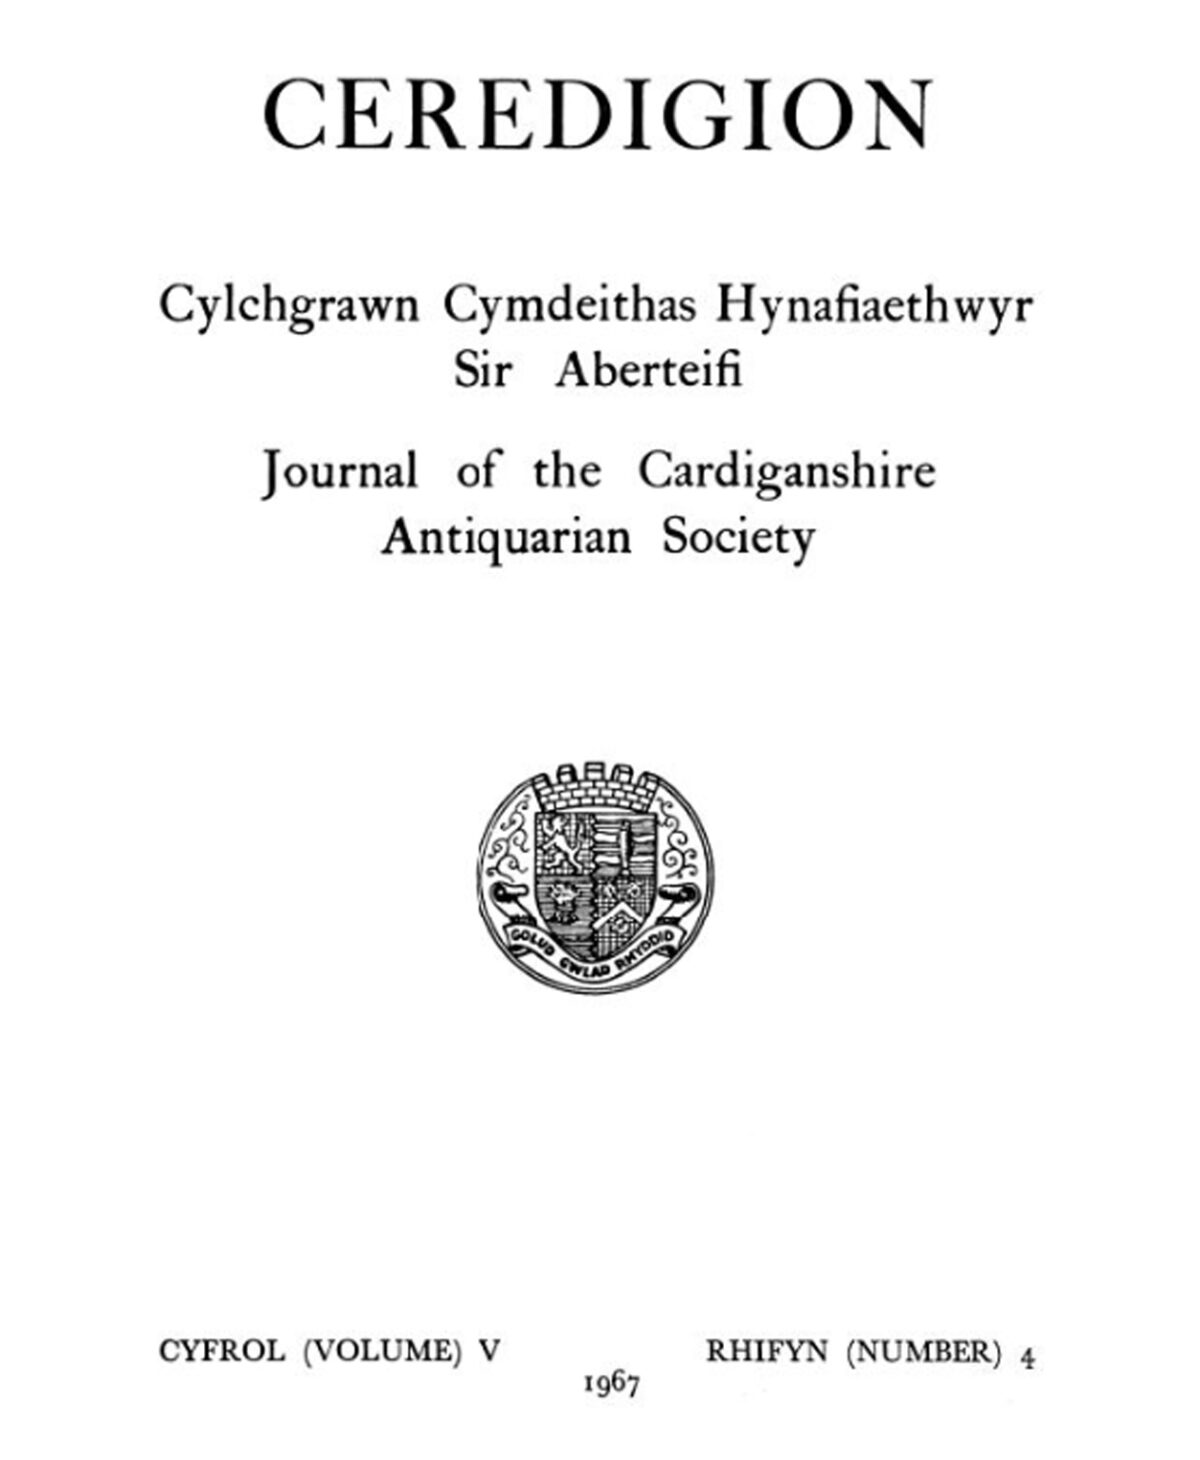 Ceredigion – Journal of the Cardiganshire Antiquarian Society, 1967 Vol V No 4